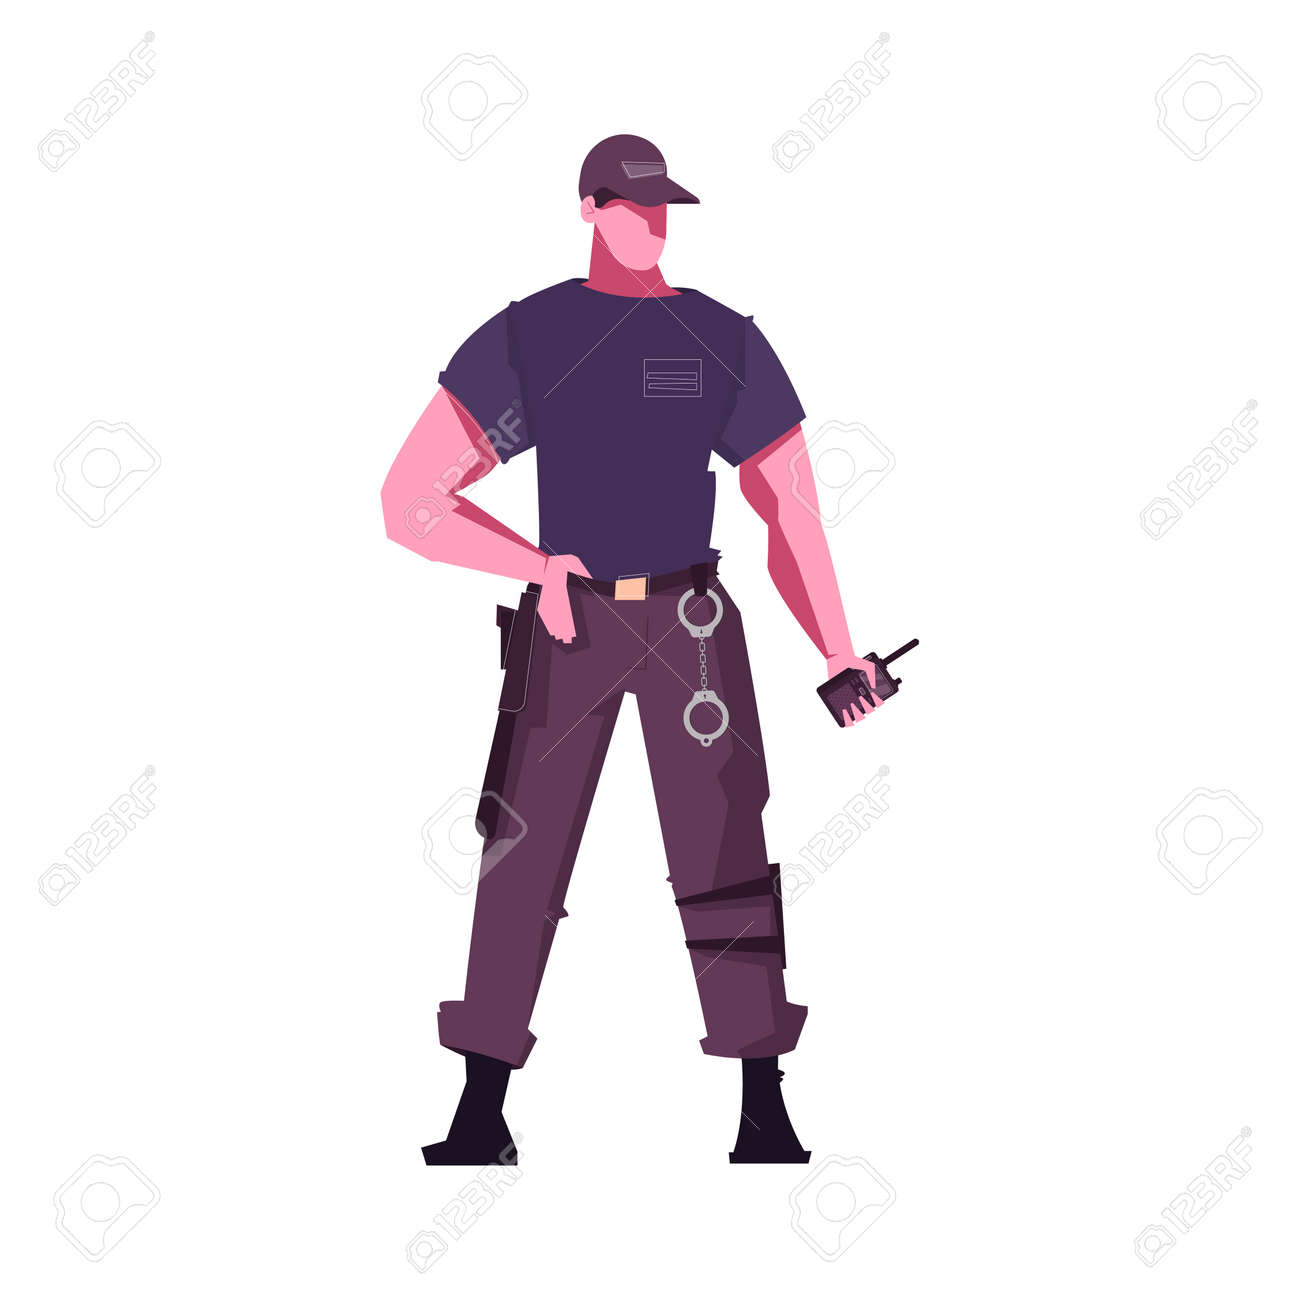 Security Guard Icon - 171558585